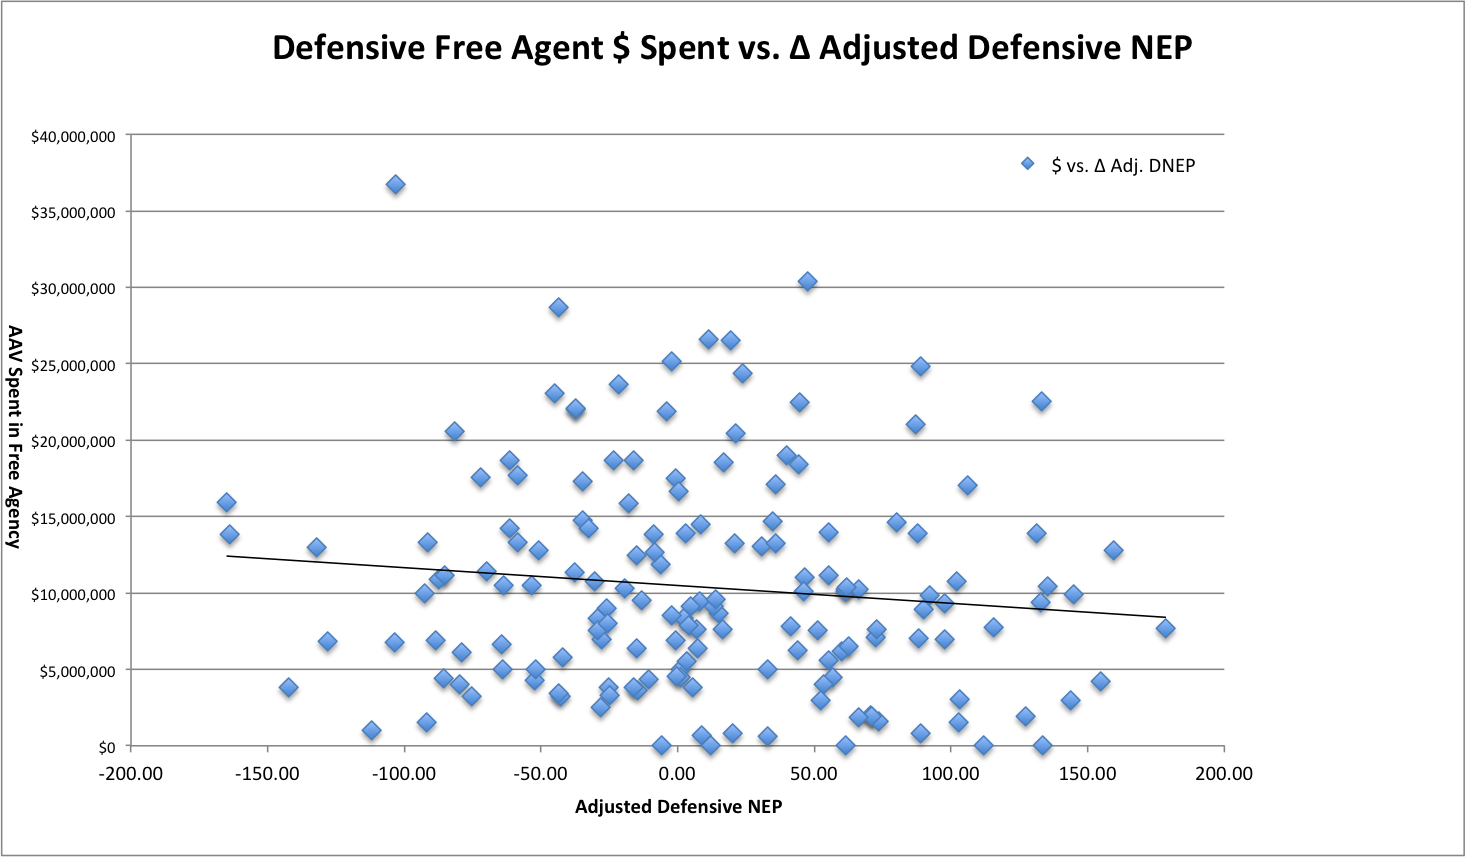 Offseason Money Spent vs. Adjusted Defensive NEP Change